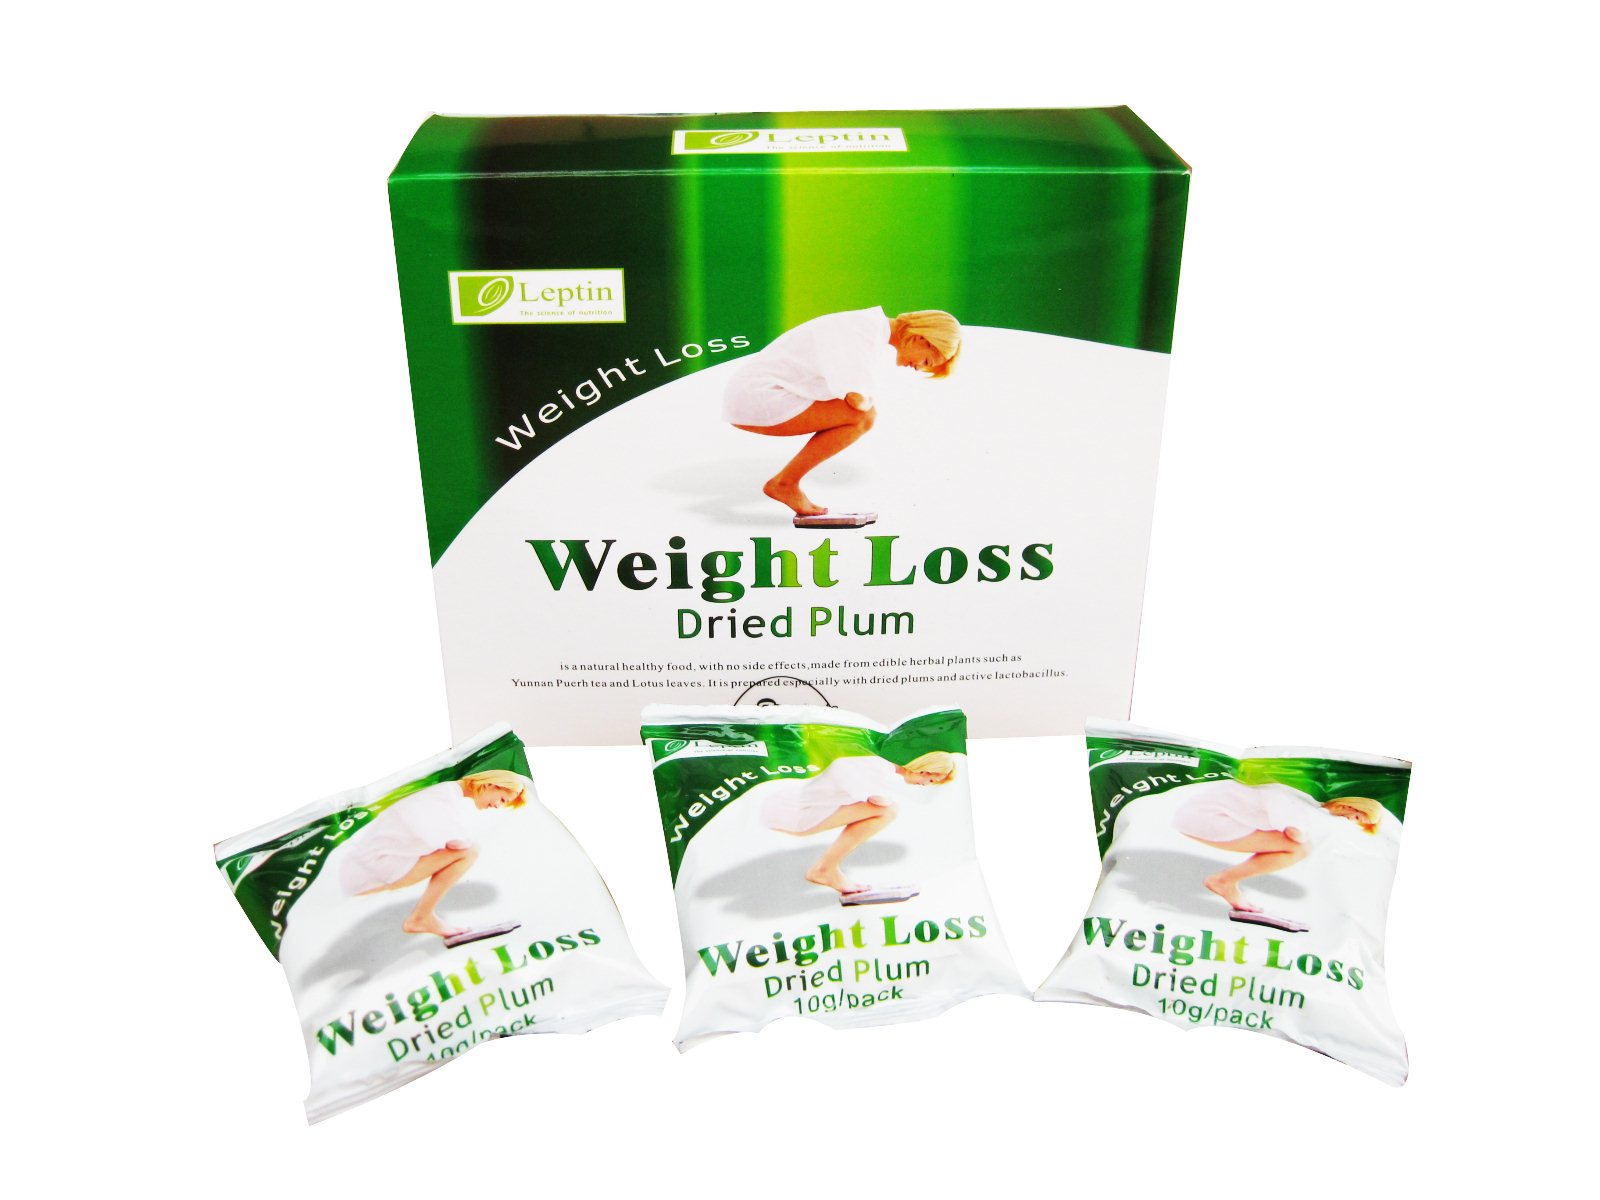 How to lose weight loss in tamil